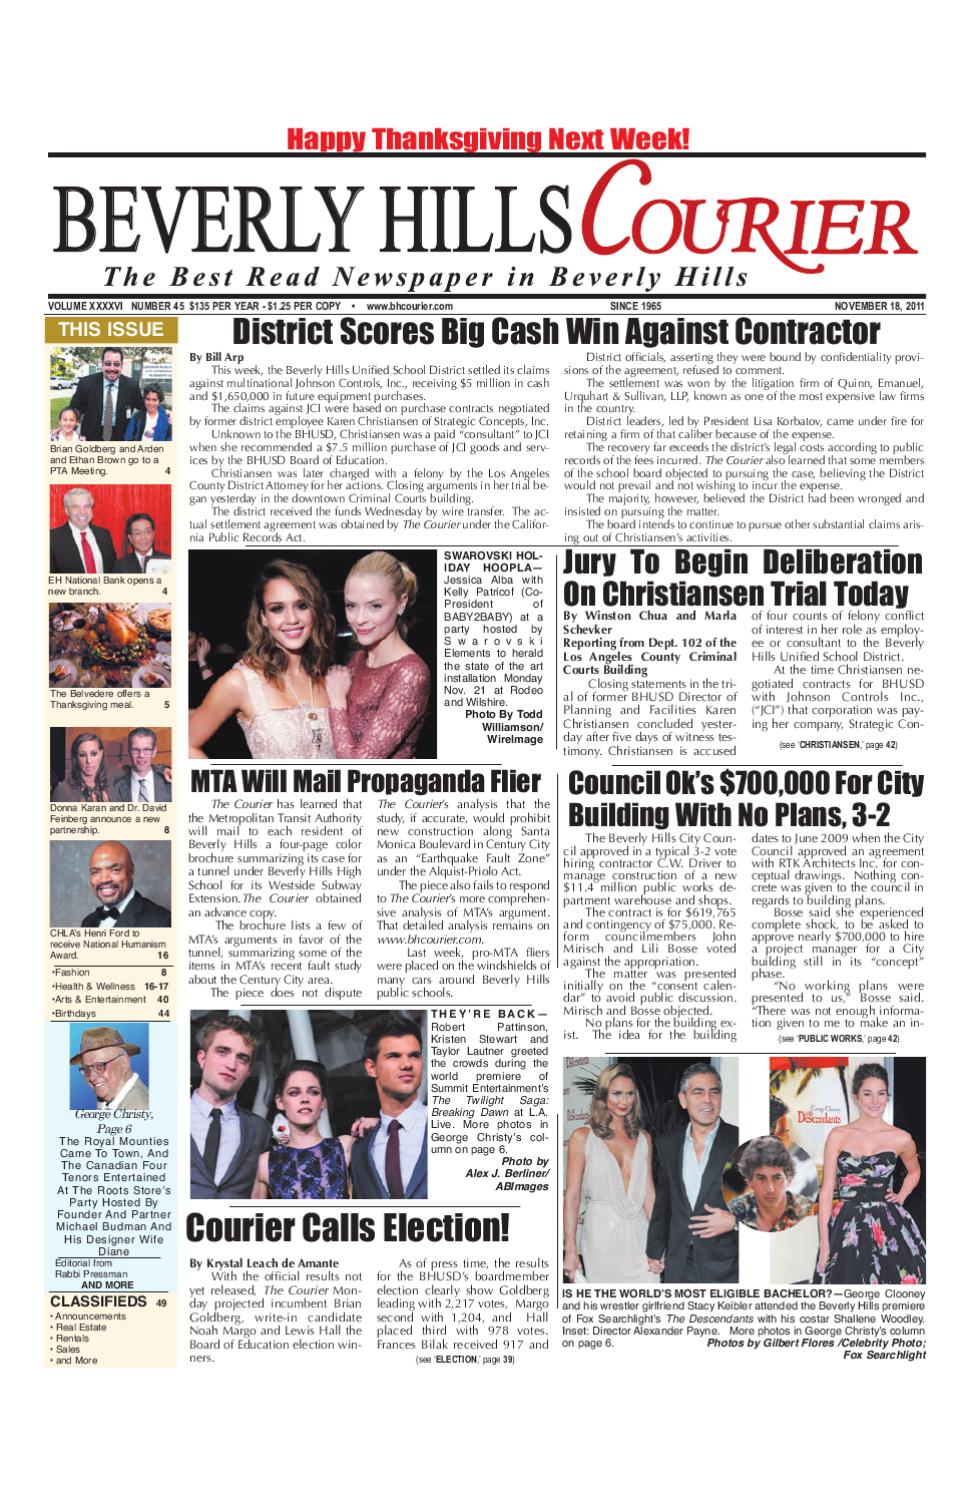 29c50ad4f55 BH Courier 11-18-2011 by The Beverly Hills Courier - issuu